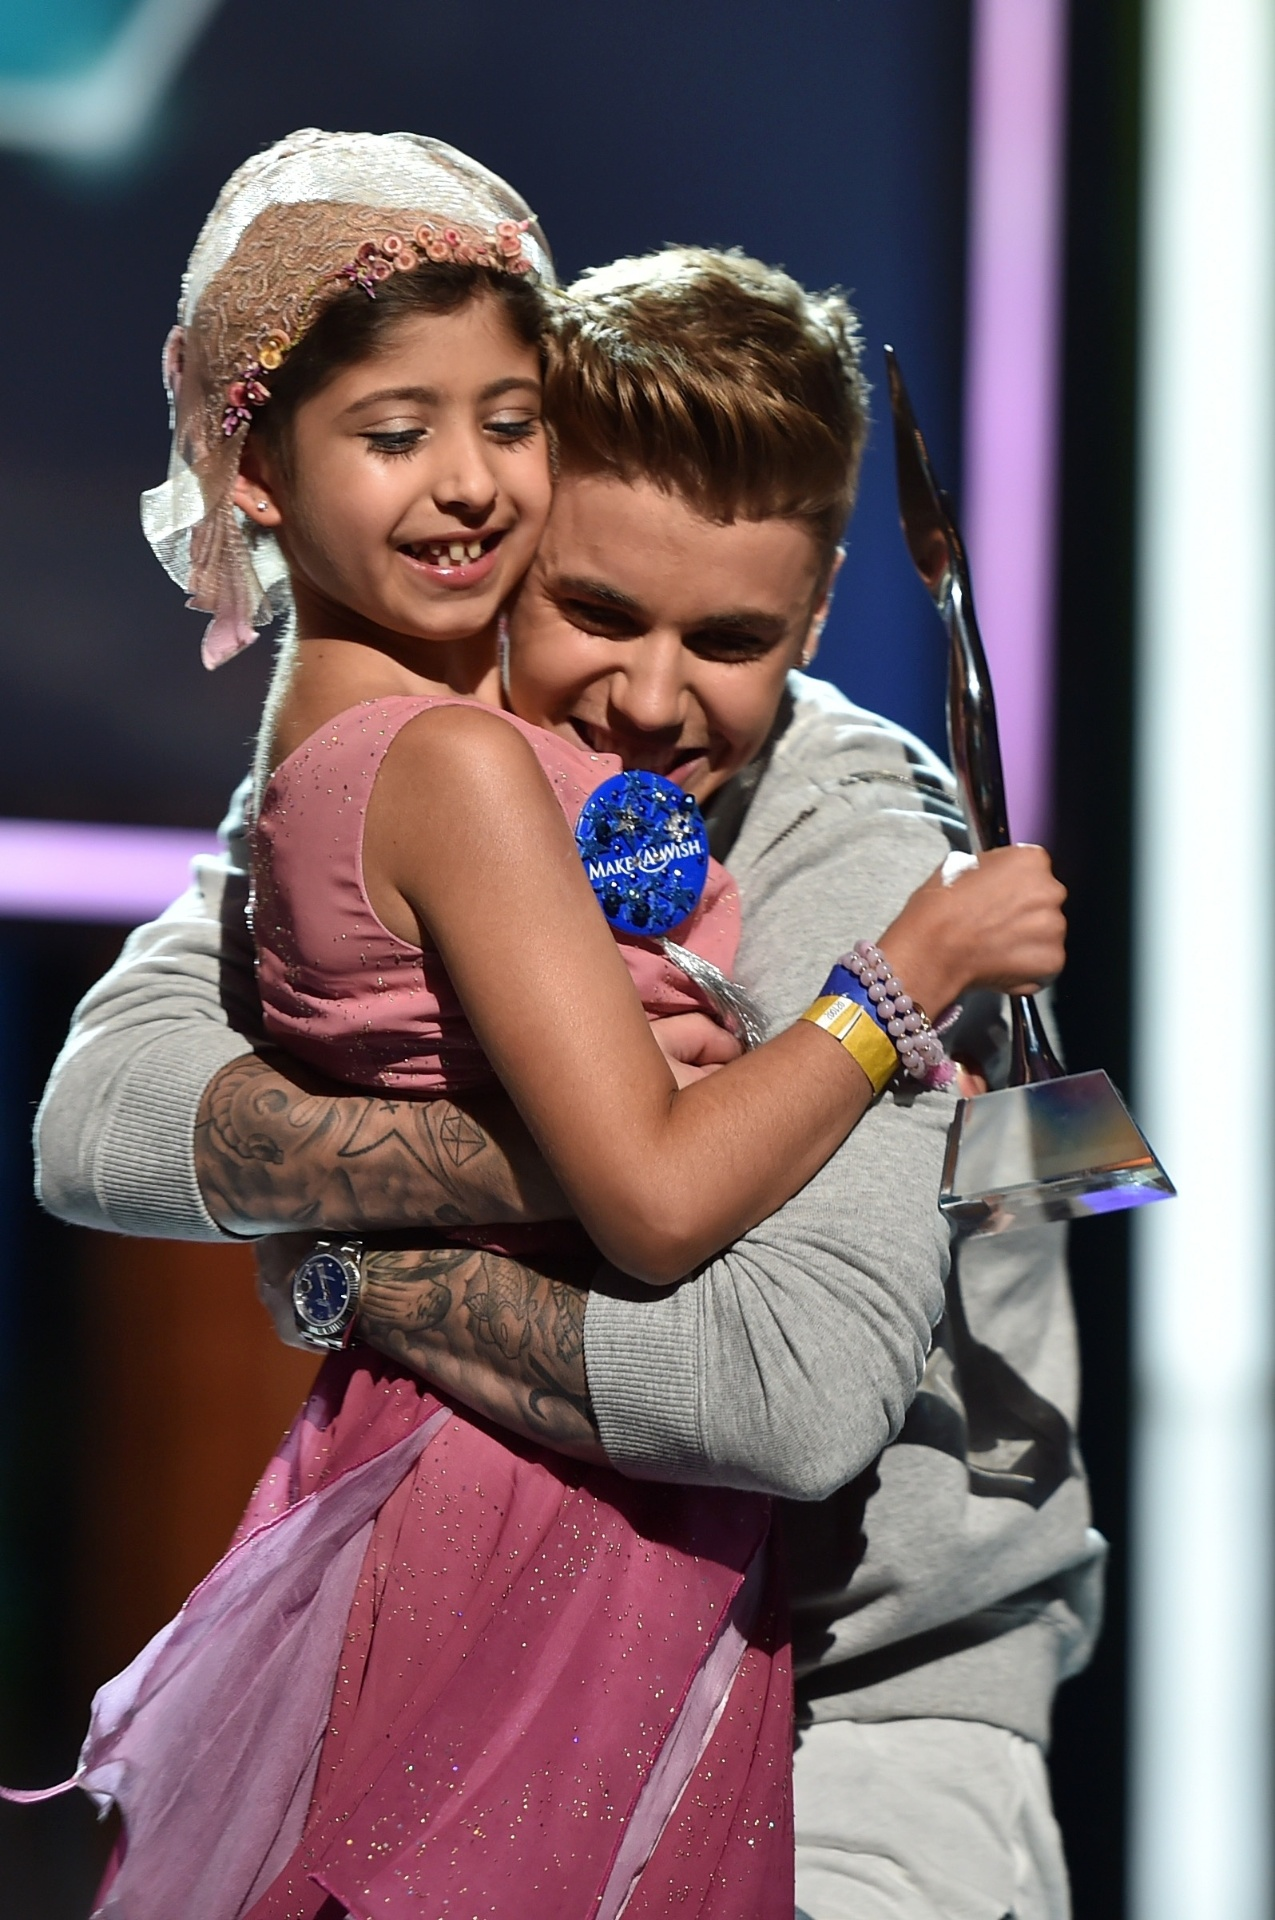 Justin Bieber recebe o prêmio de Grace Kesablak no palco do Young Hollywood Awards 2014